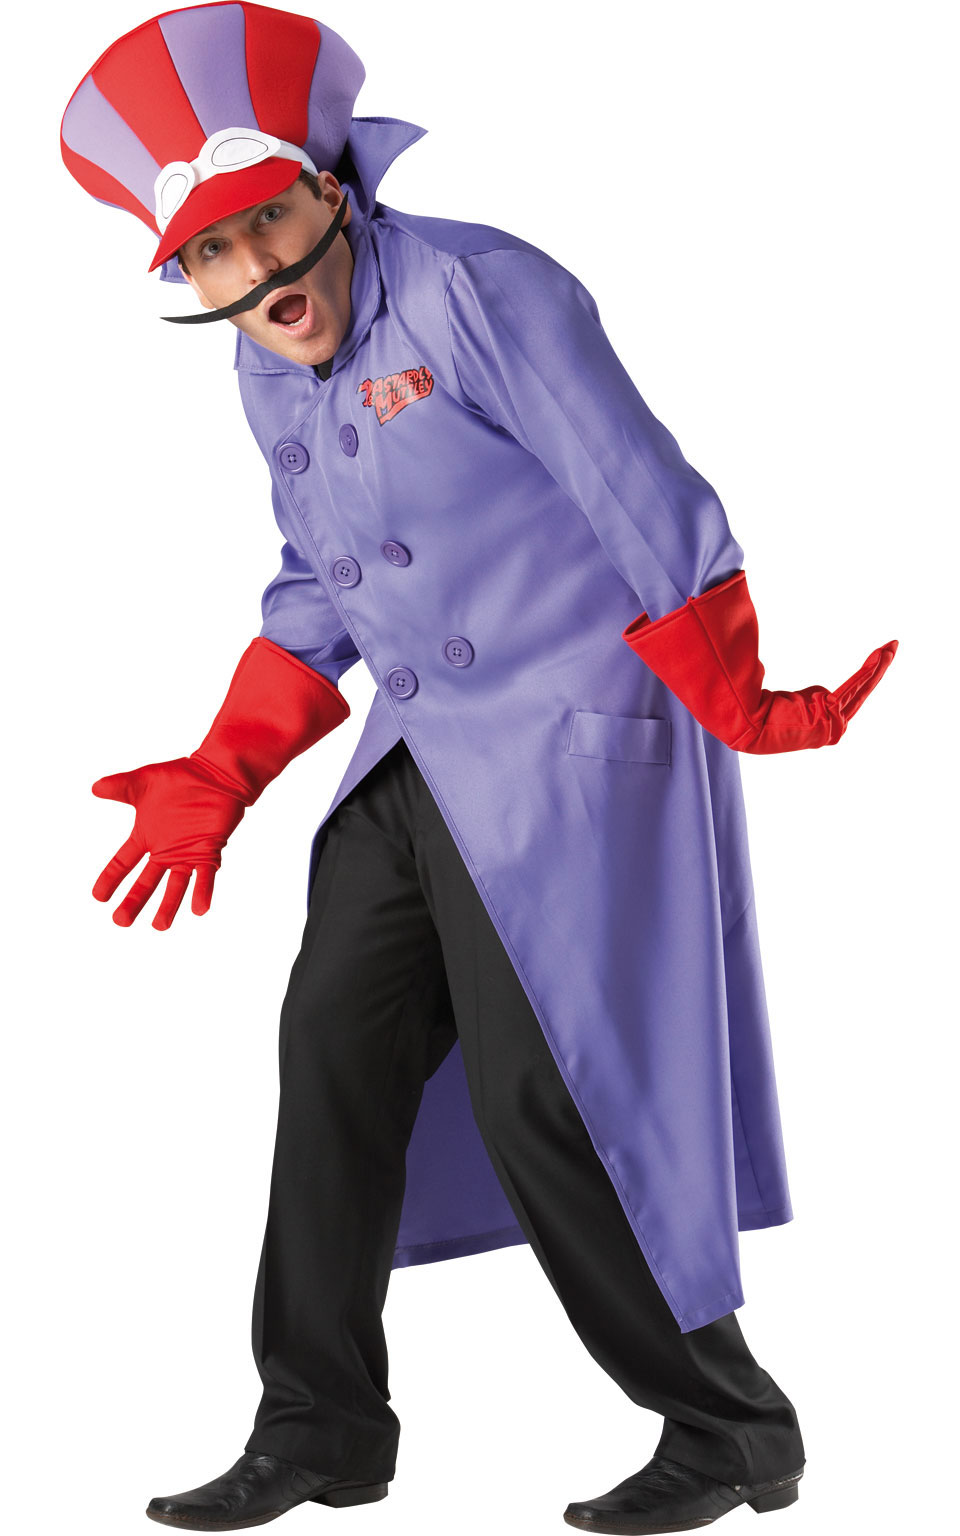 Dick Dastardly, Wacky Races Costume